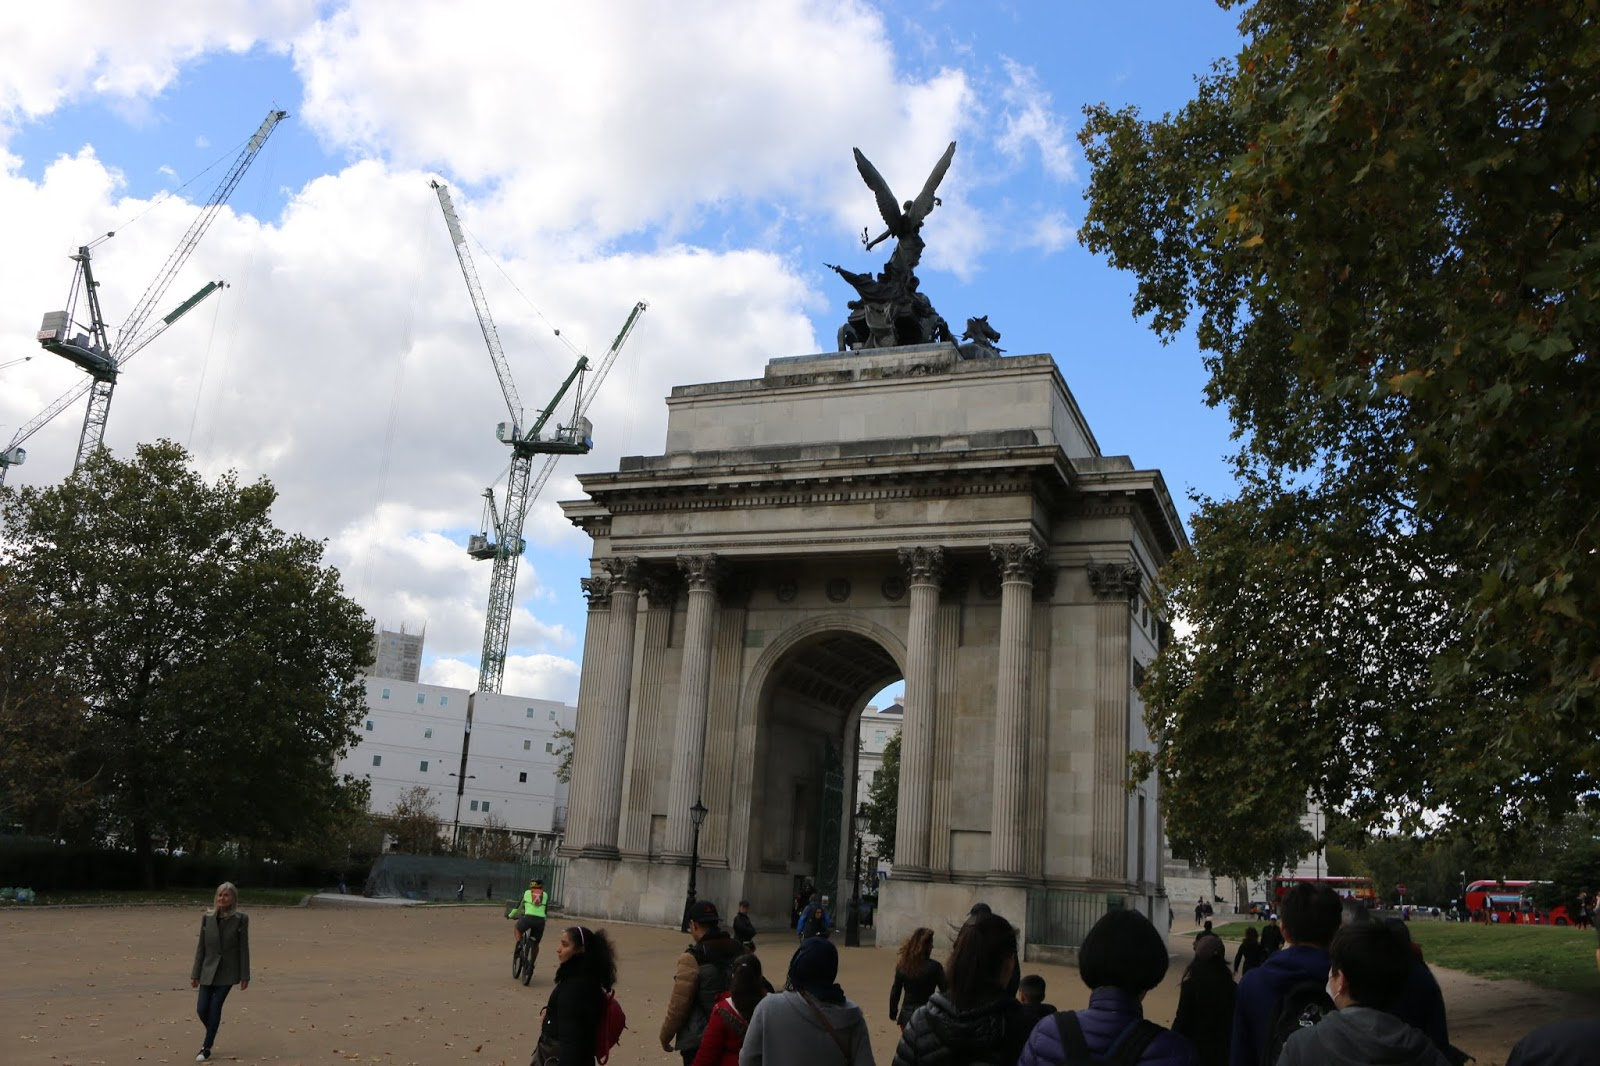 Wellington Arch London